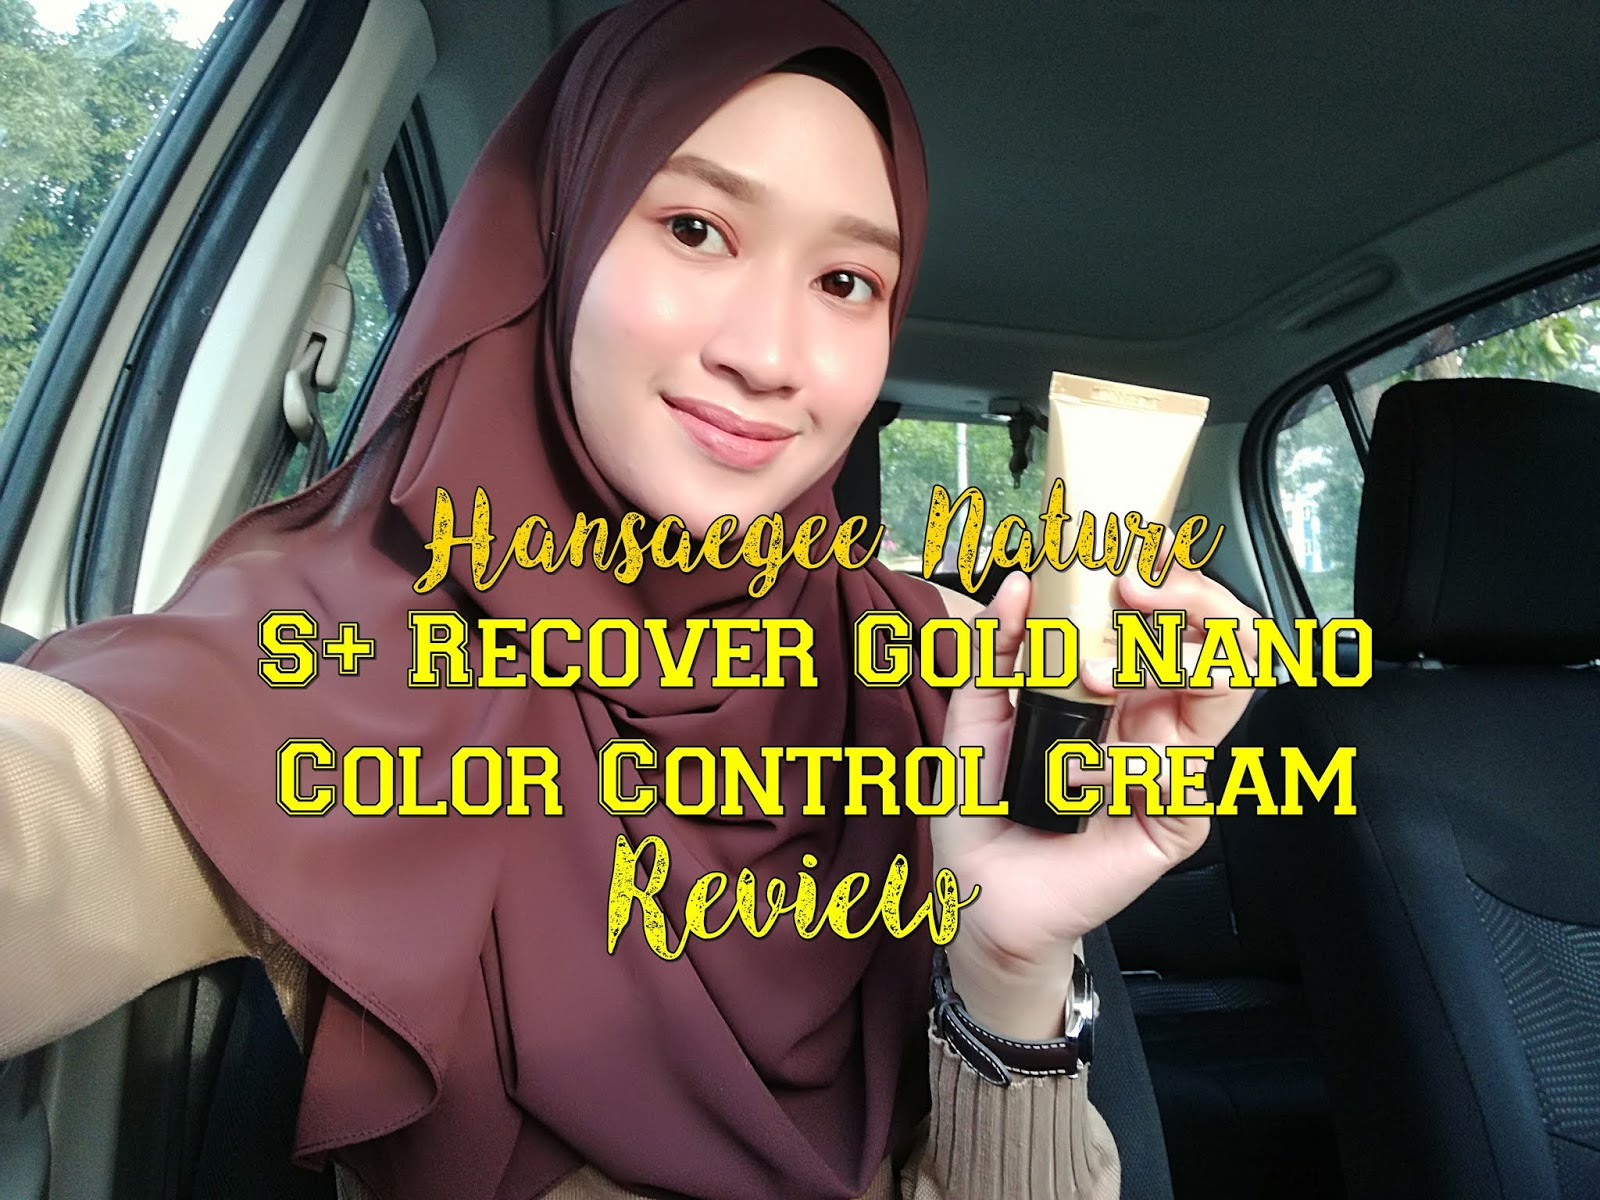 Hansaegee Nature Review : Tampil Cantik Berseri dengan S+ Recover Gold Nano Color Control Cream